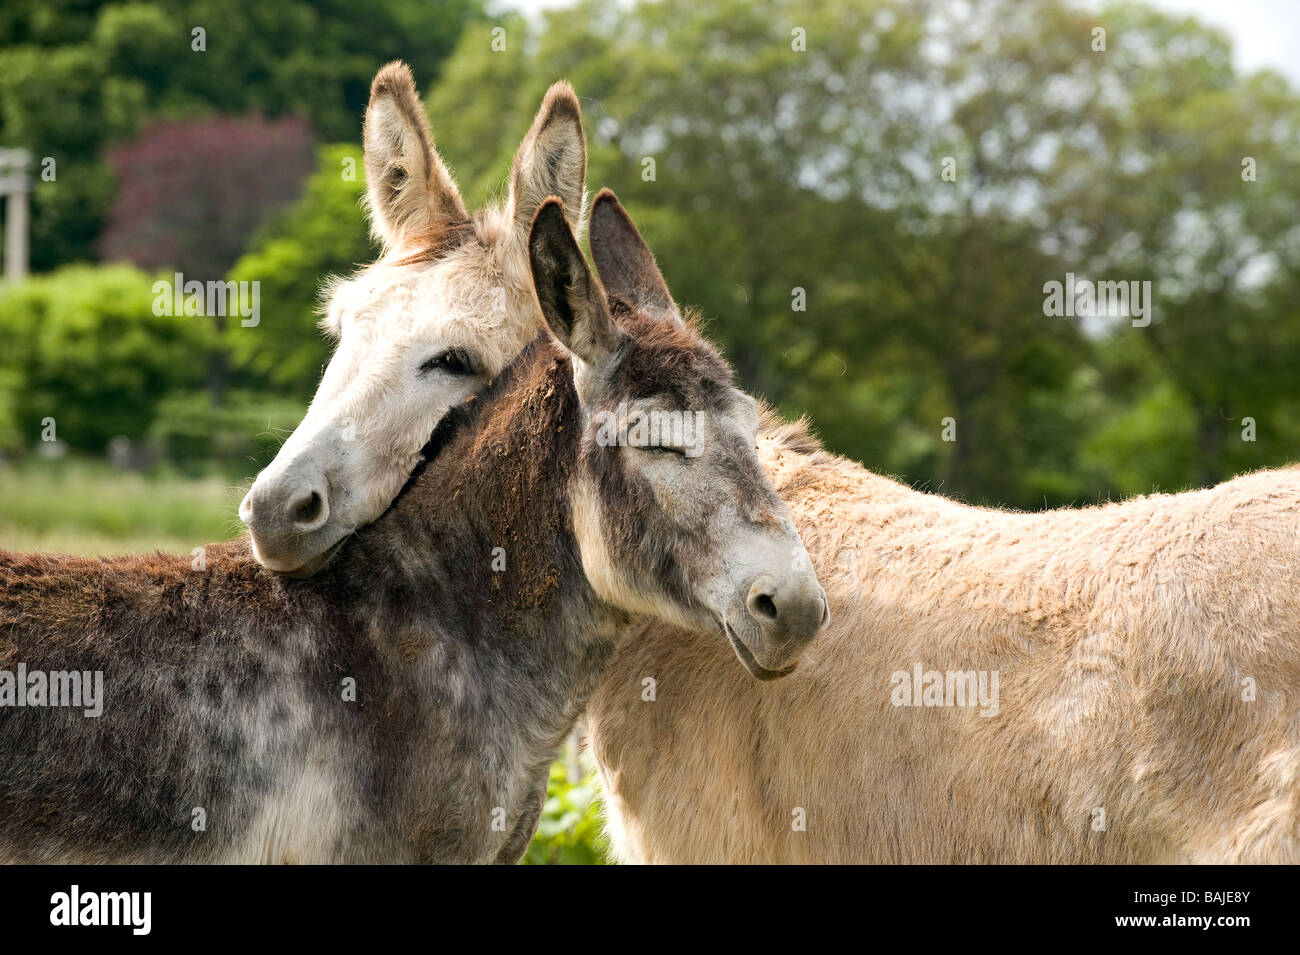 France, Cote d'Or, Villiers le Faye, tenderness donkeys - Stock Image